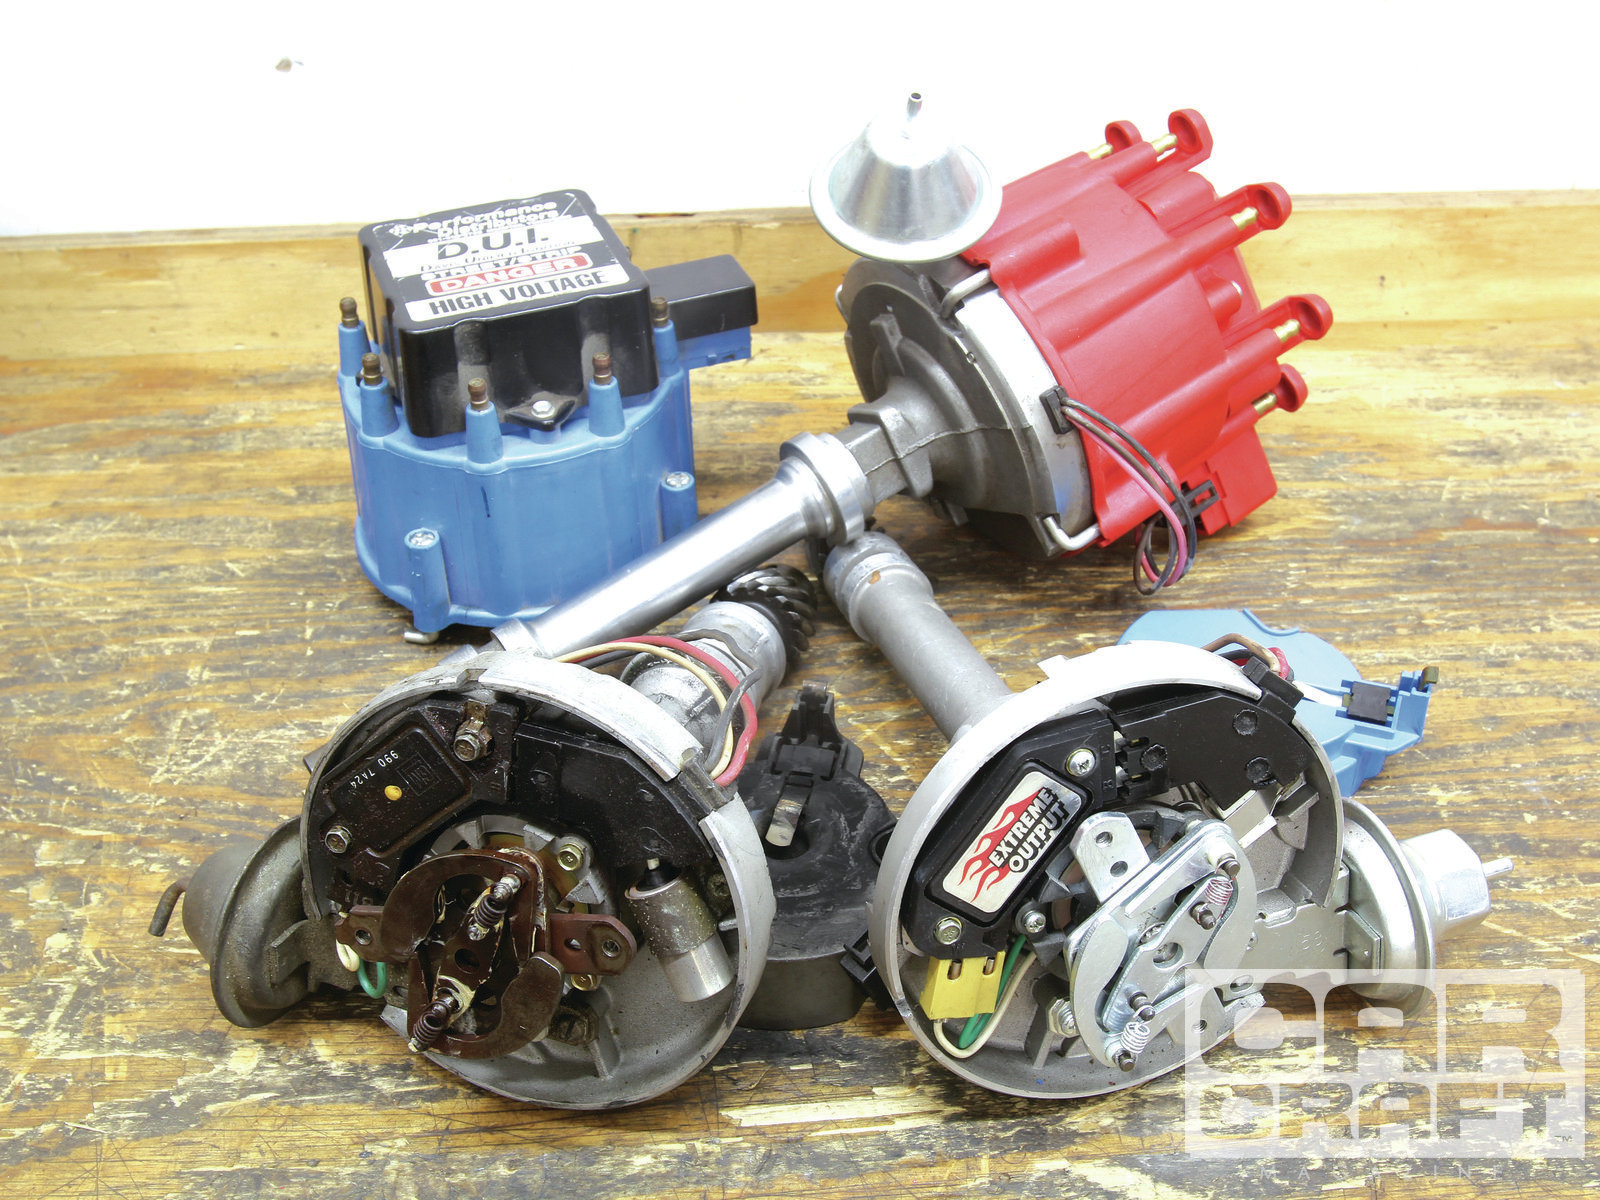 Rather than spend $150 or more on a trick aftermarket distributor, you can  build your